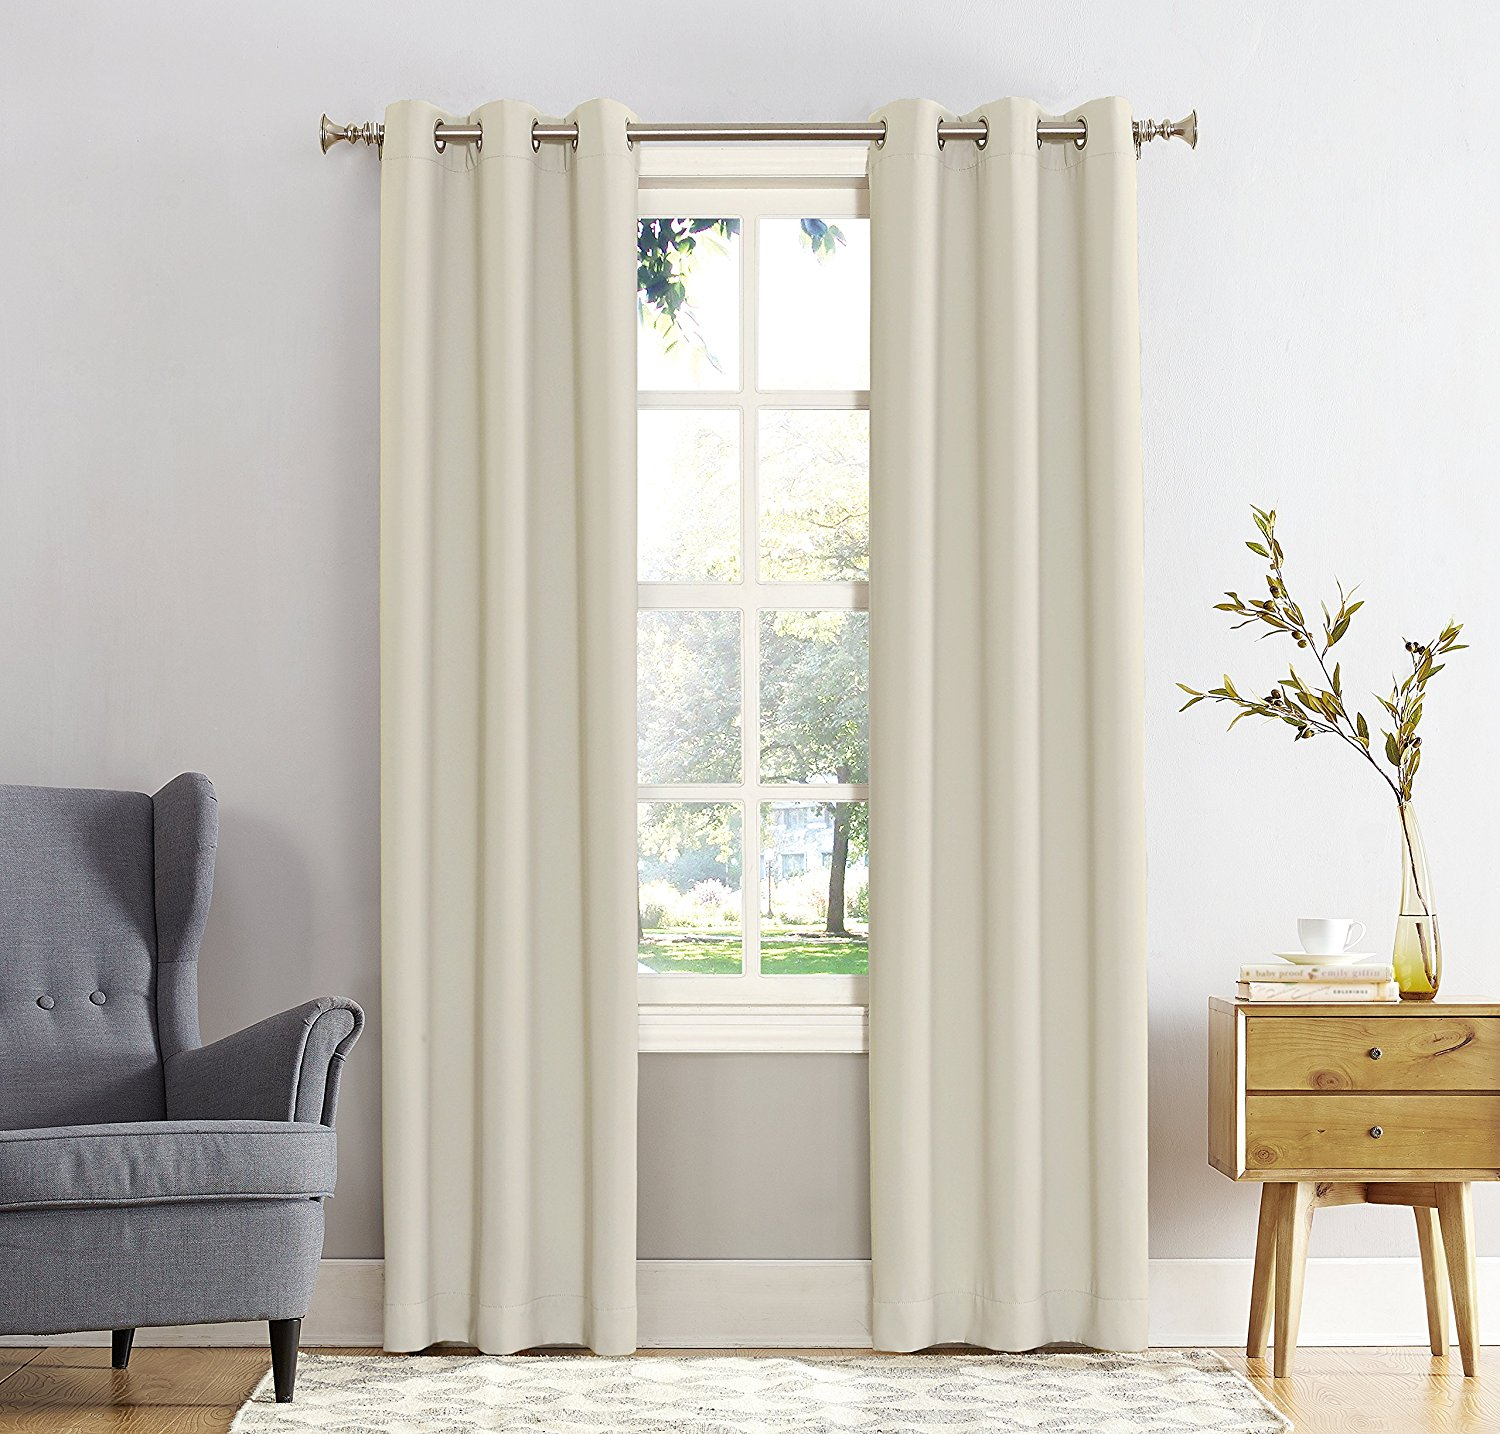 southern living blackout curtains - Blinds Vs Curtains